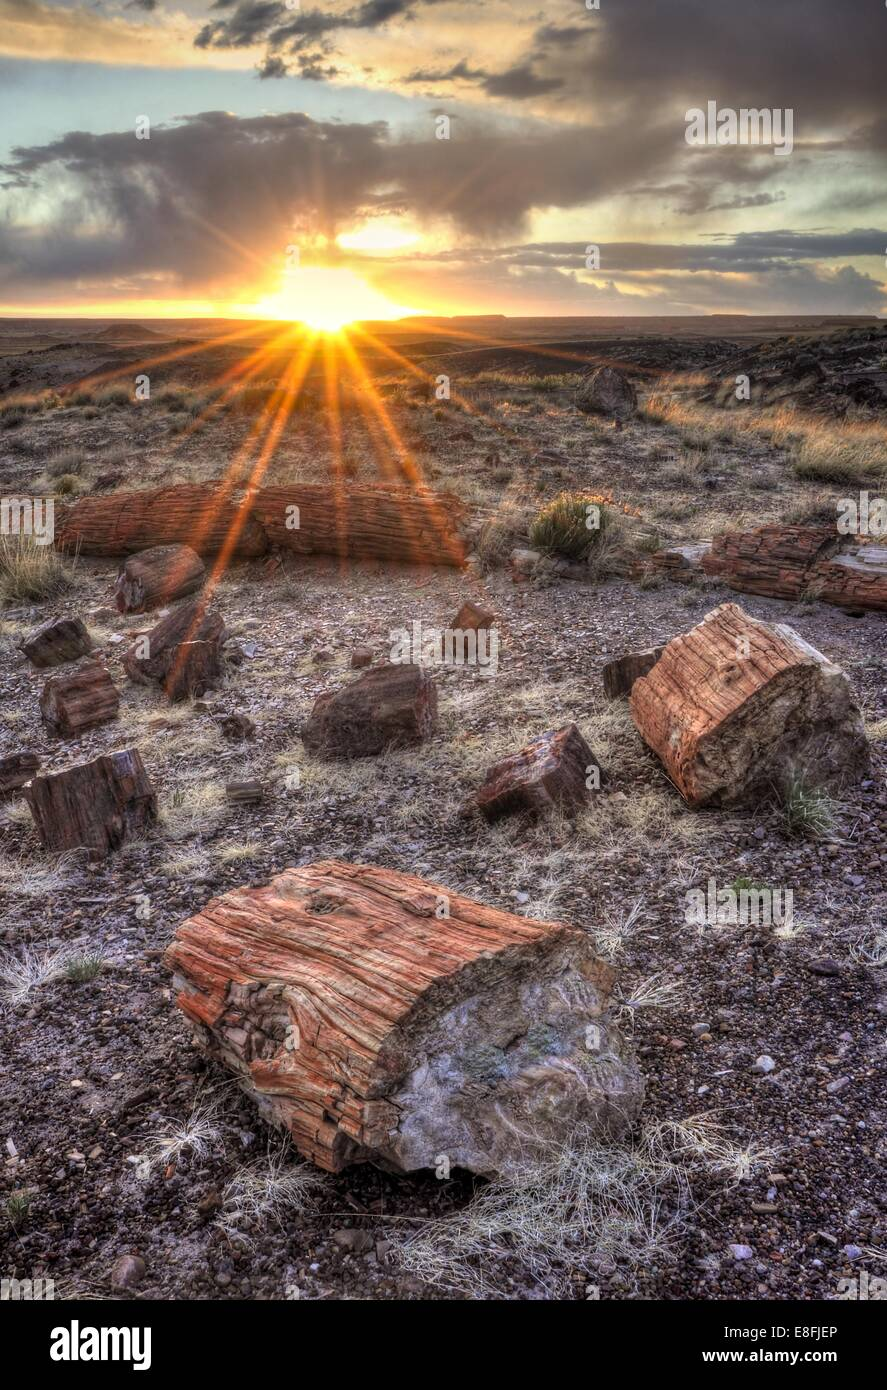 USA, Arizona, Petrified Forest National Park, Sunset in Petrified Forest - Stock Image